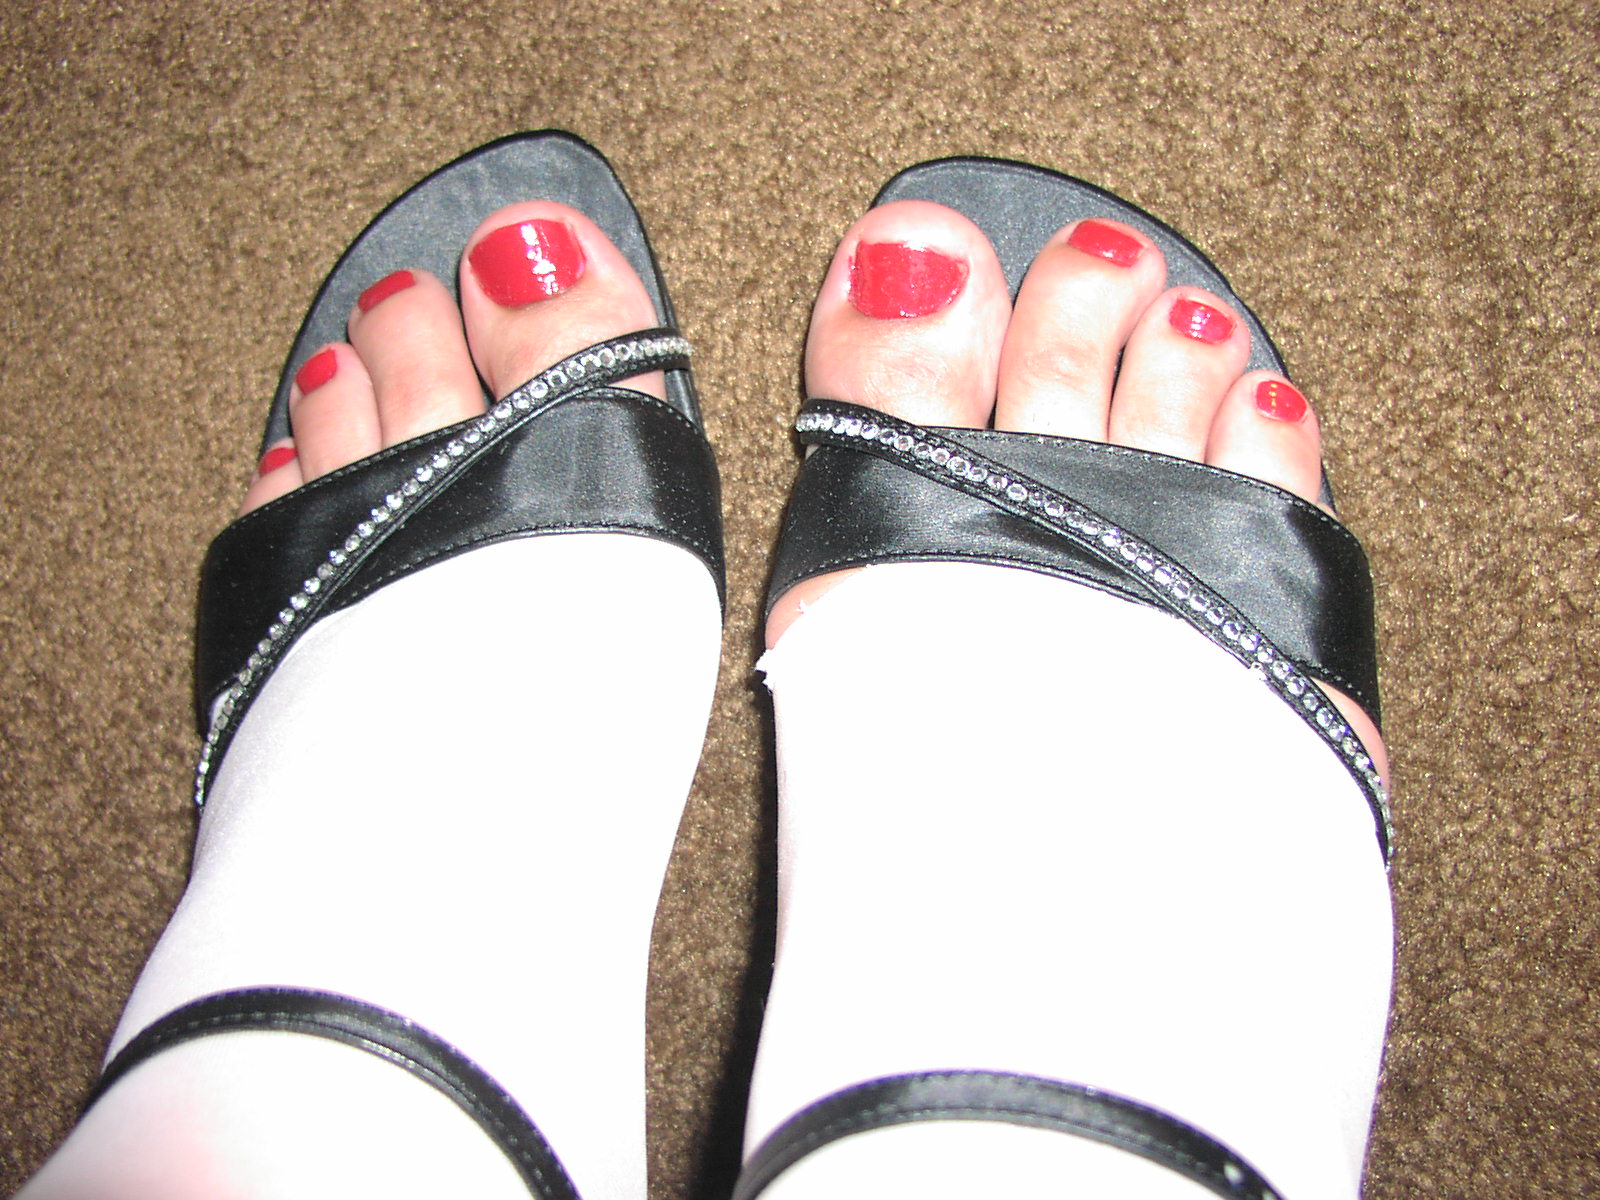 Toenails painted red